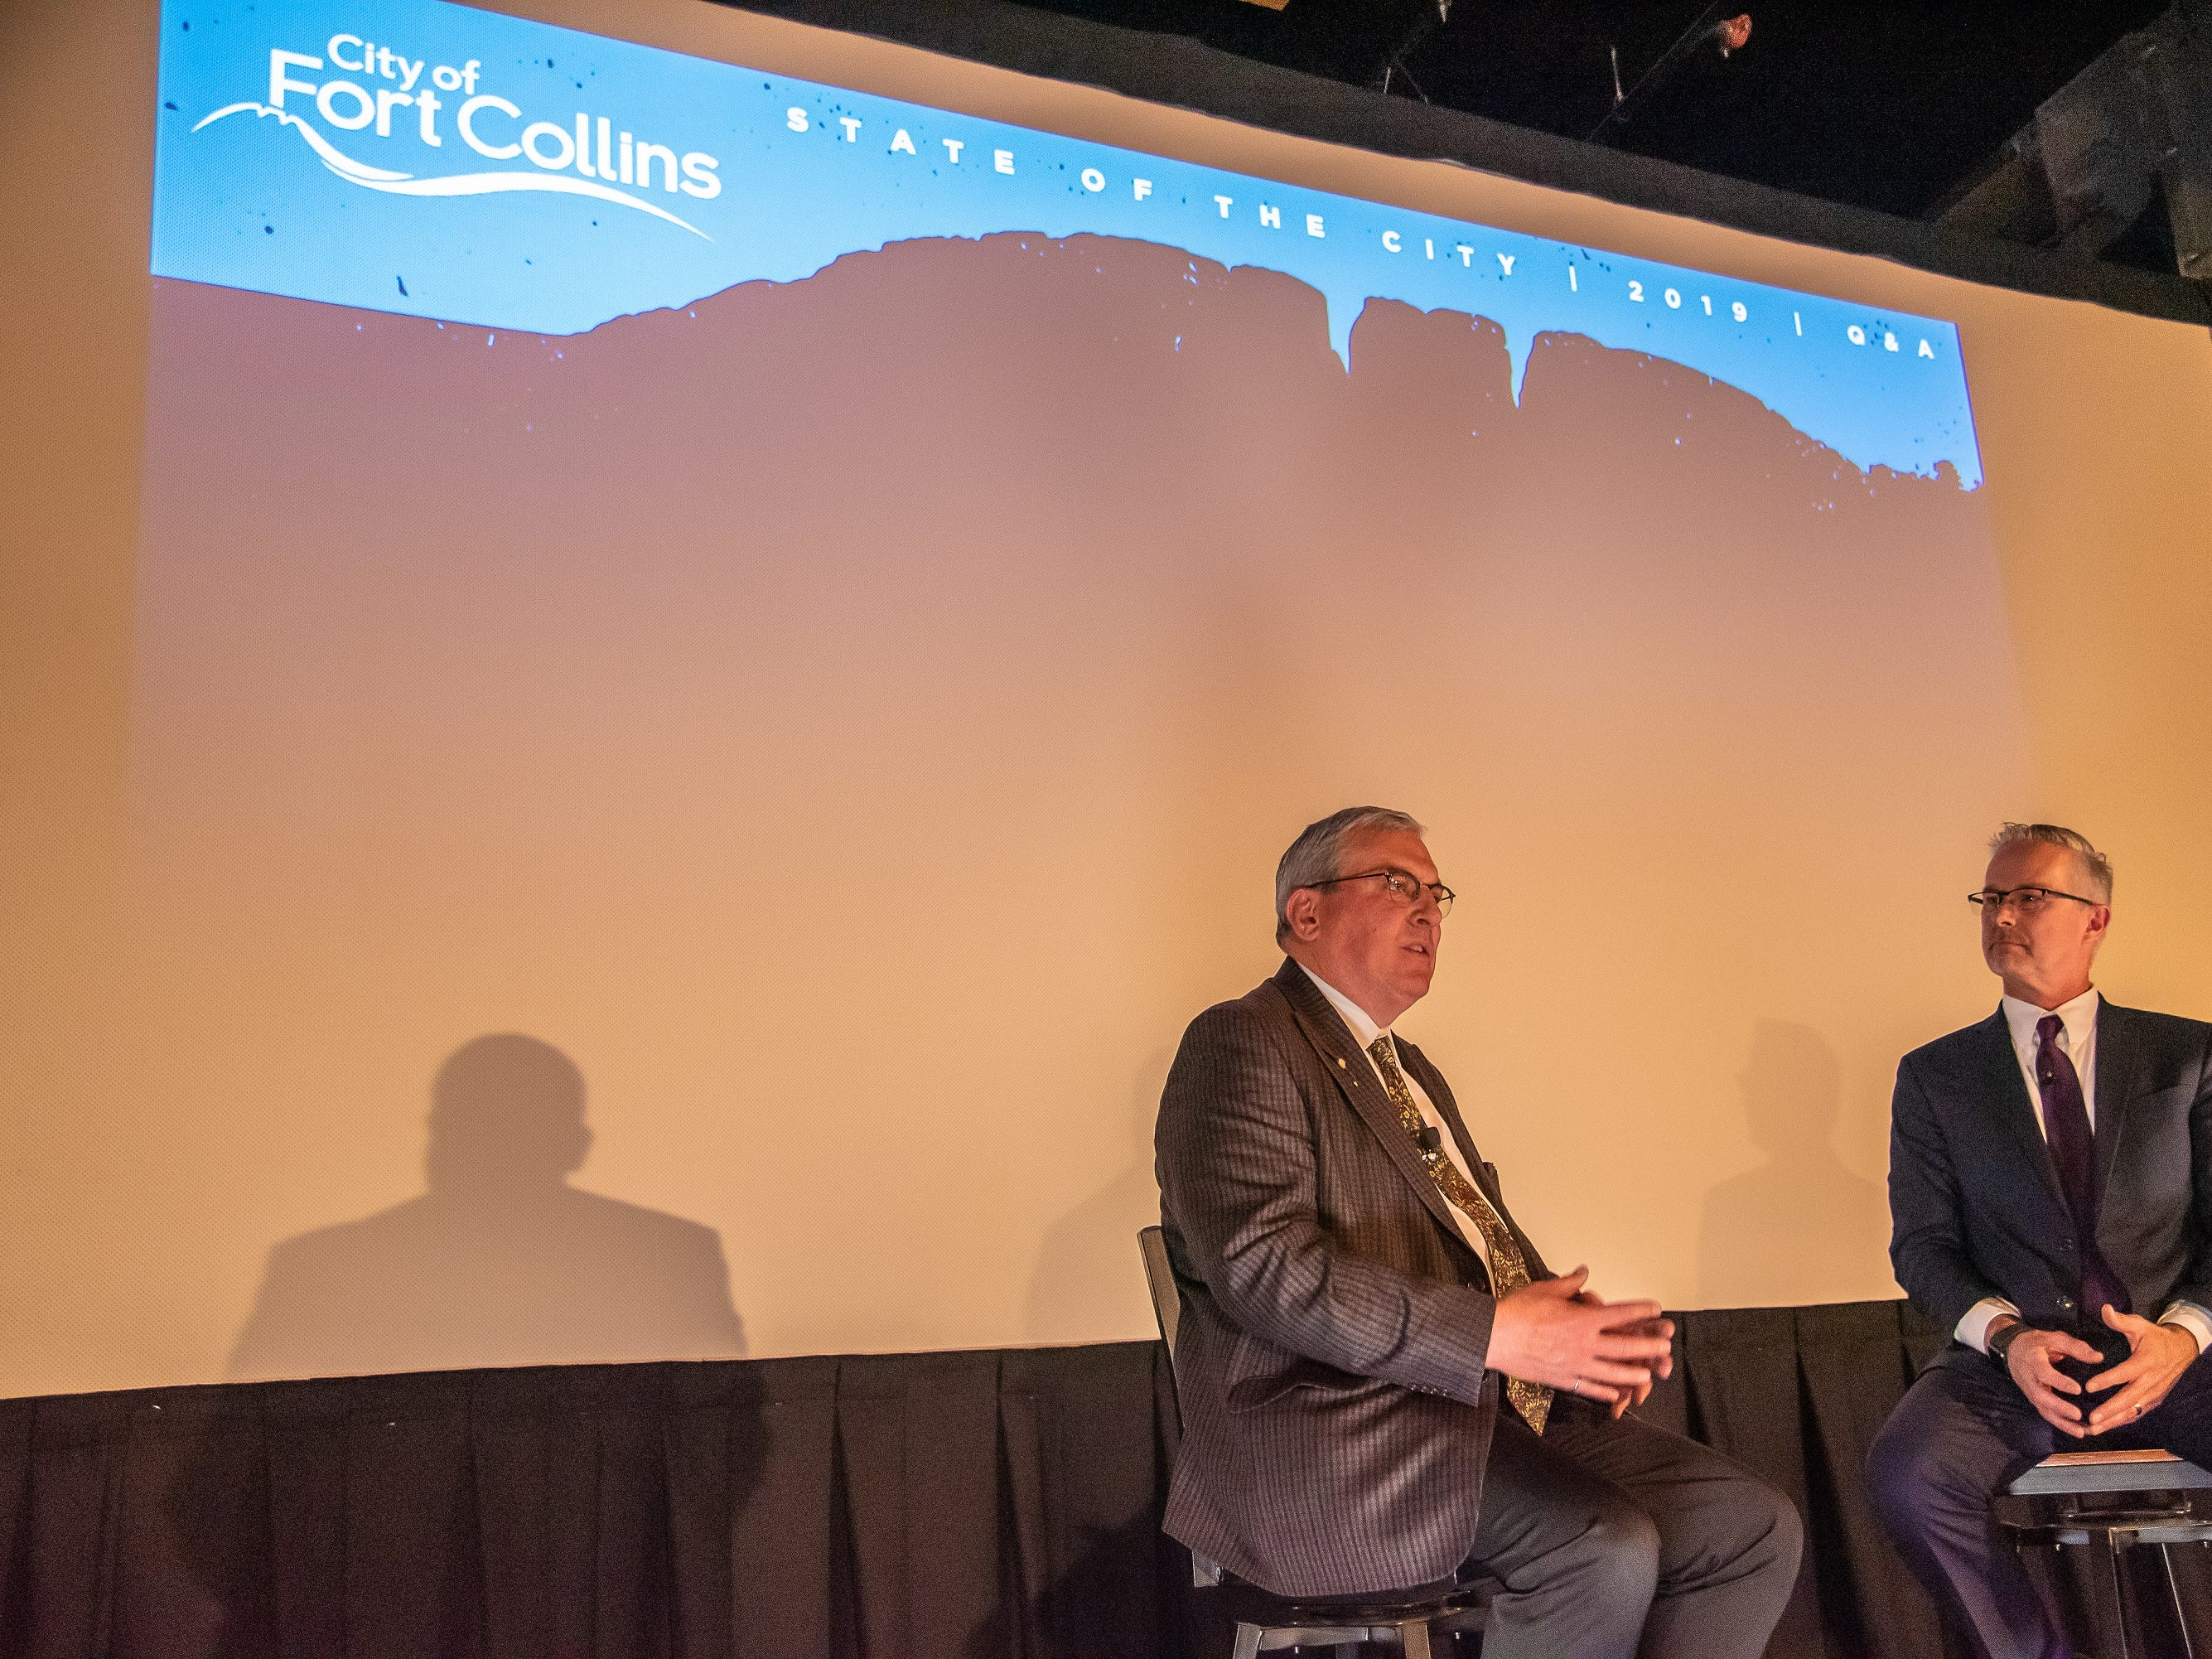 Fort Collins mayor Wade Troxell and City Manager Darin Atteberry address the crowd during the annual State of the City Address on Tuesday, January 29, 2019, at the Lyric Cinema in Fort Collins, Colo.